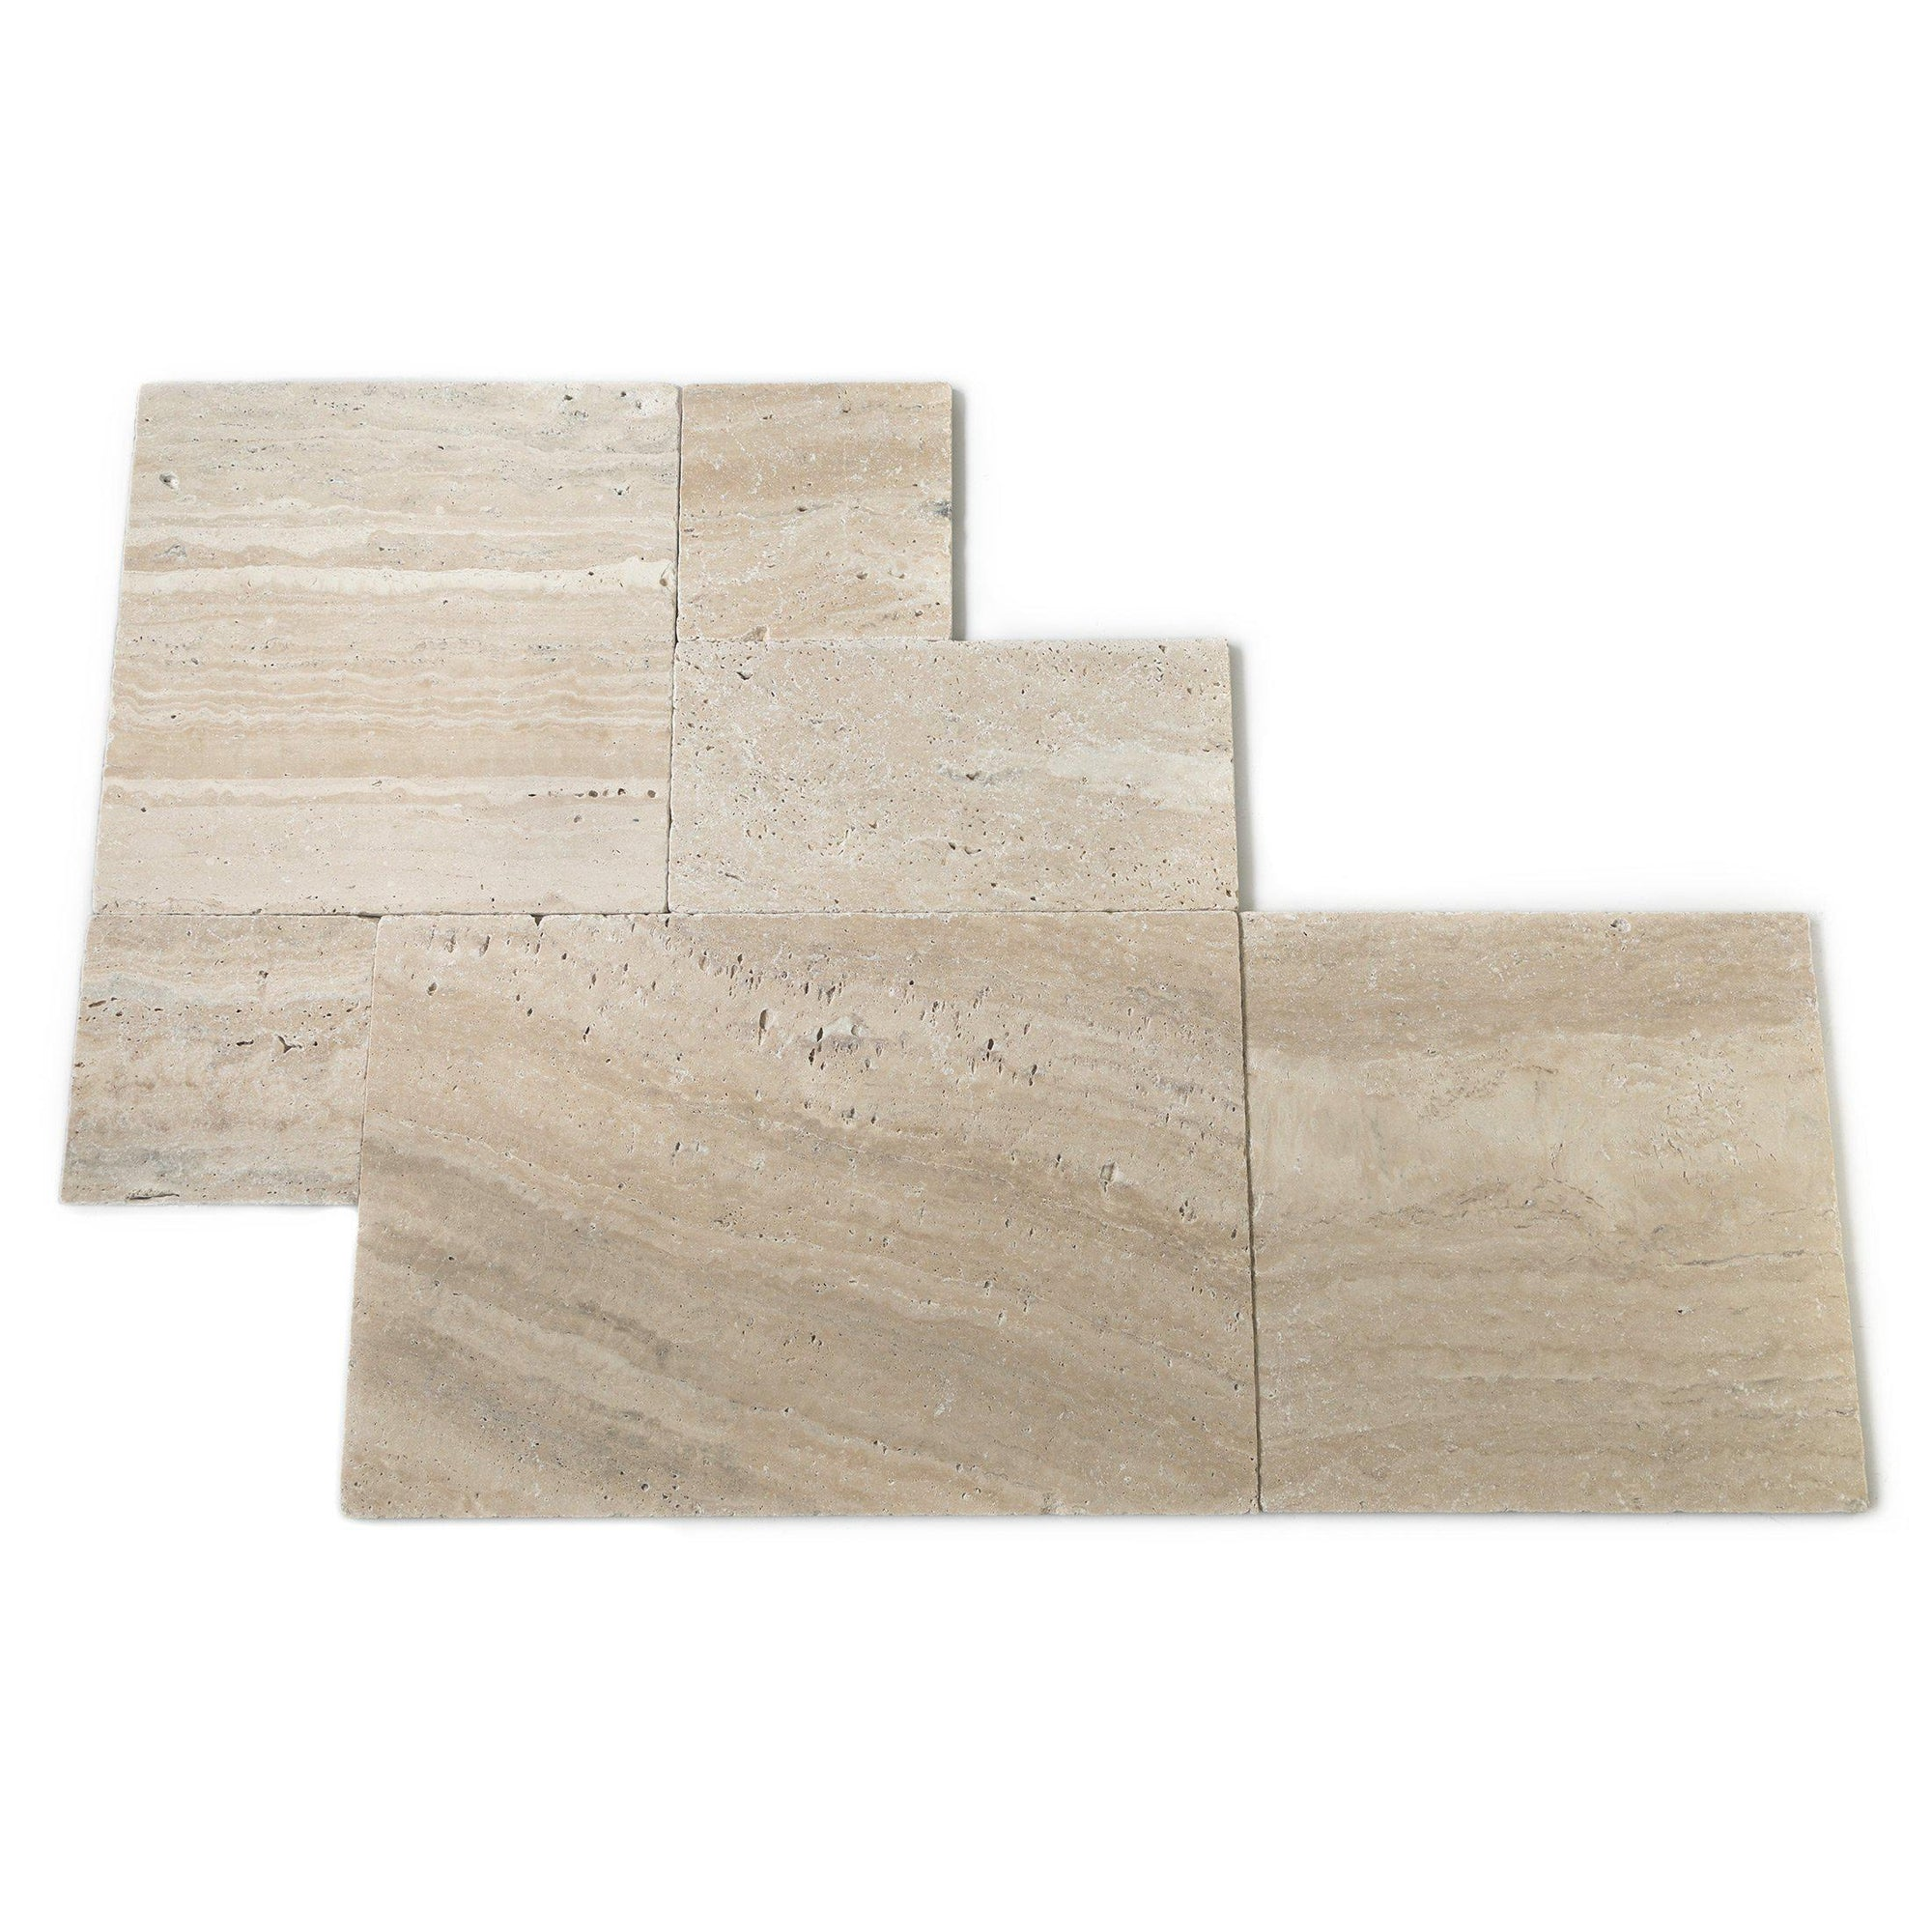 Philadelphia Tumbled French Set Travertine Tile